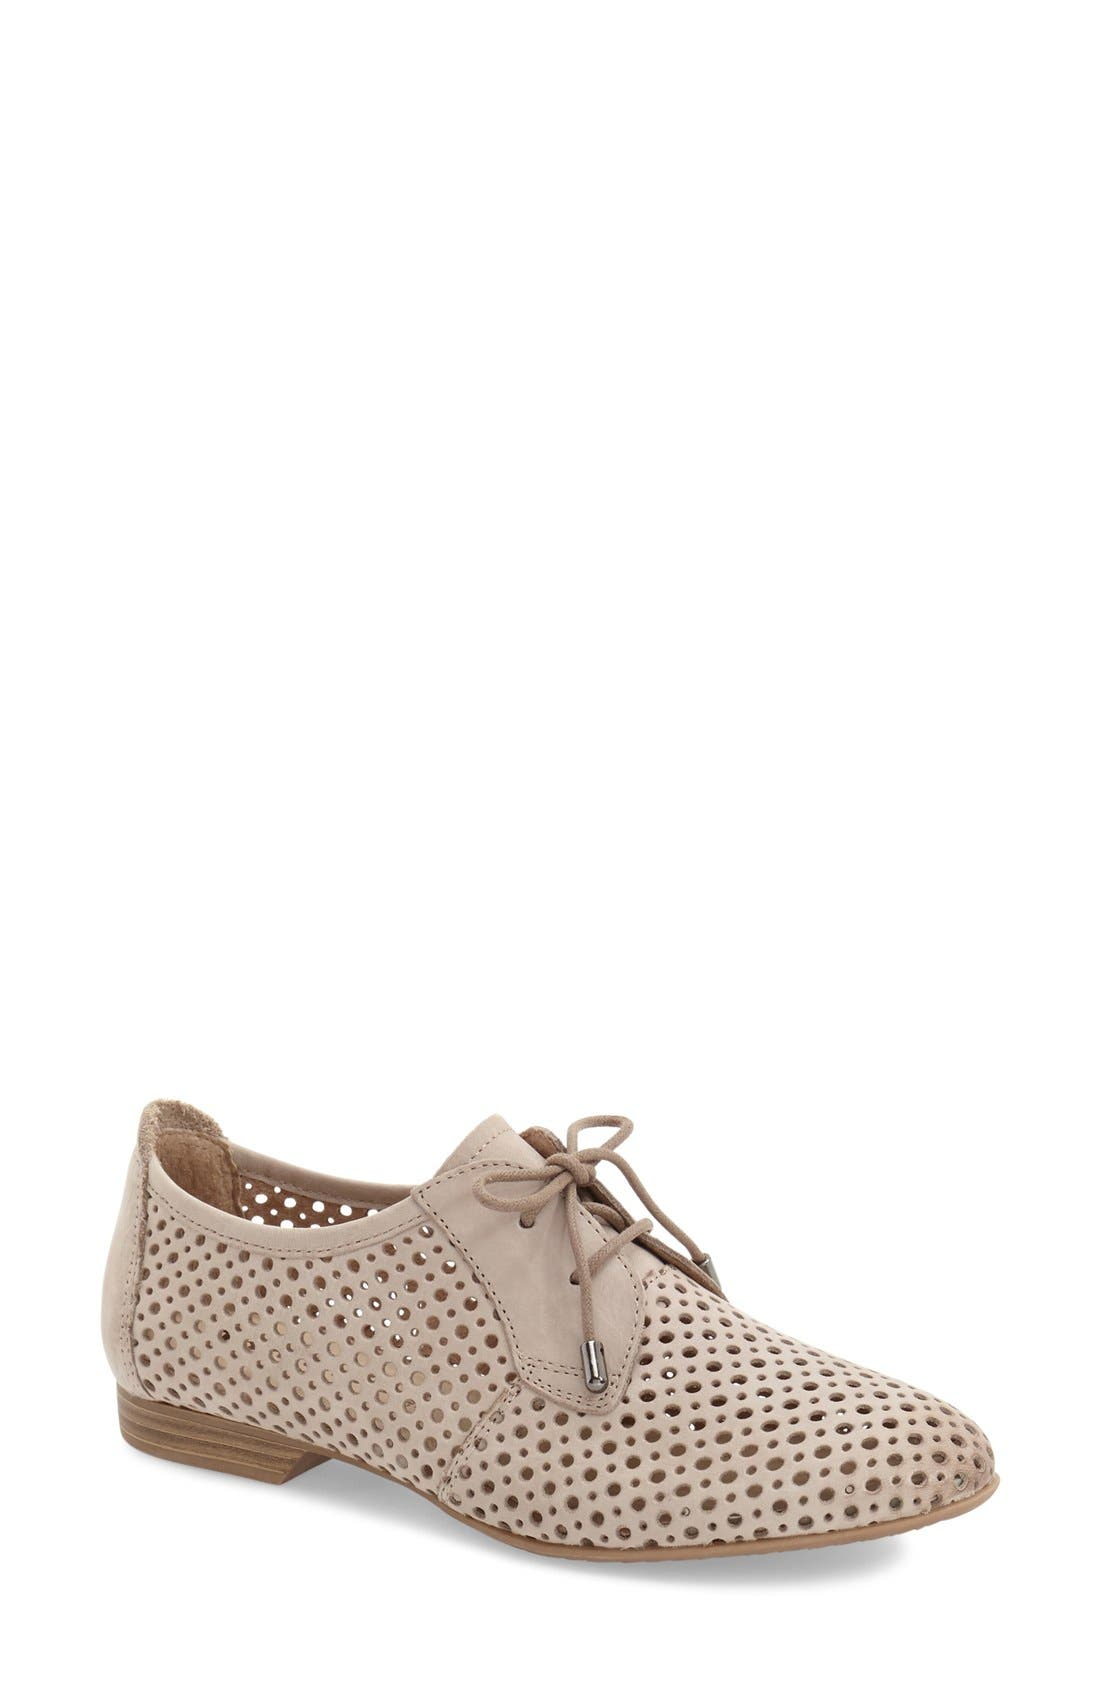 Tamaris 'Drene' Perforated Oxford (Women)